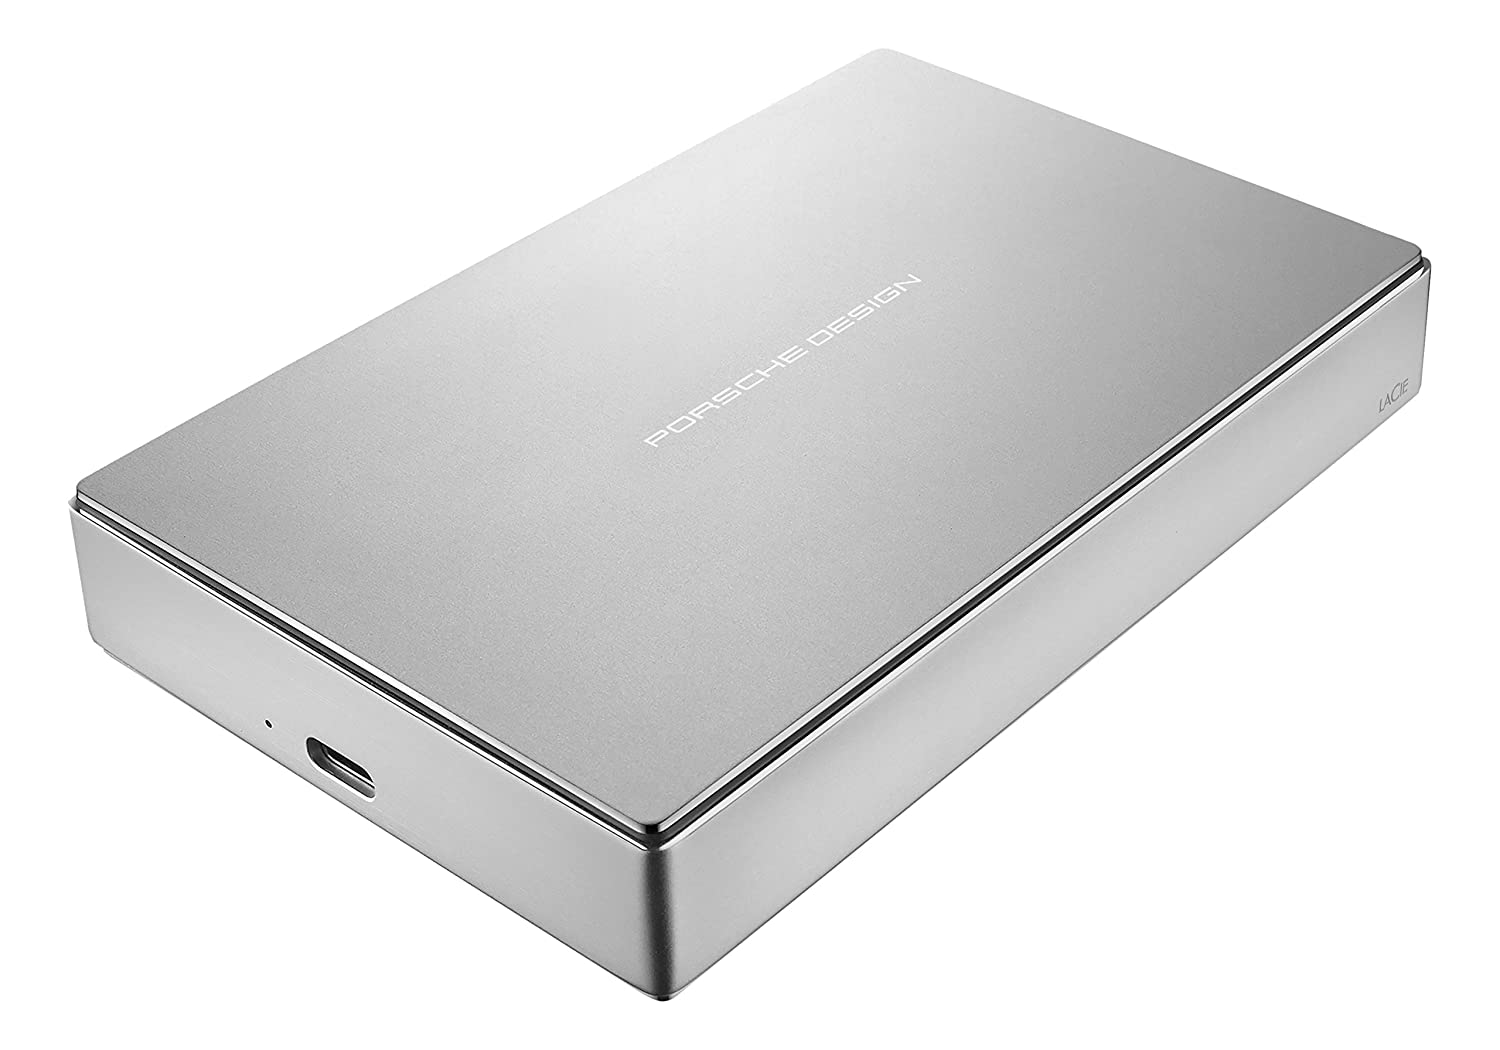 LaCie Porsche Design 4TB Mobile Hard Drive Black Friday Deal